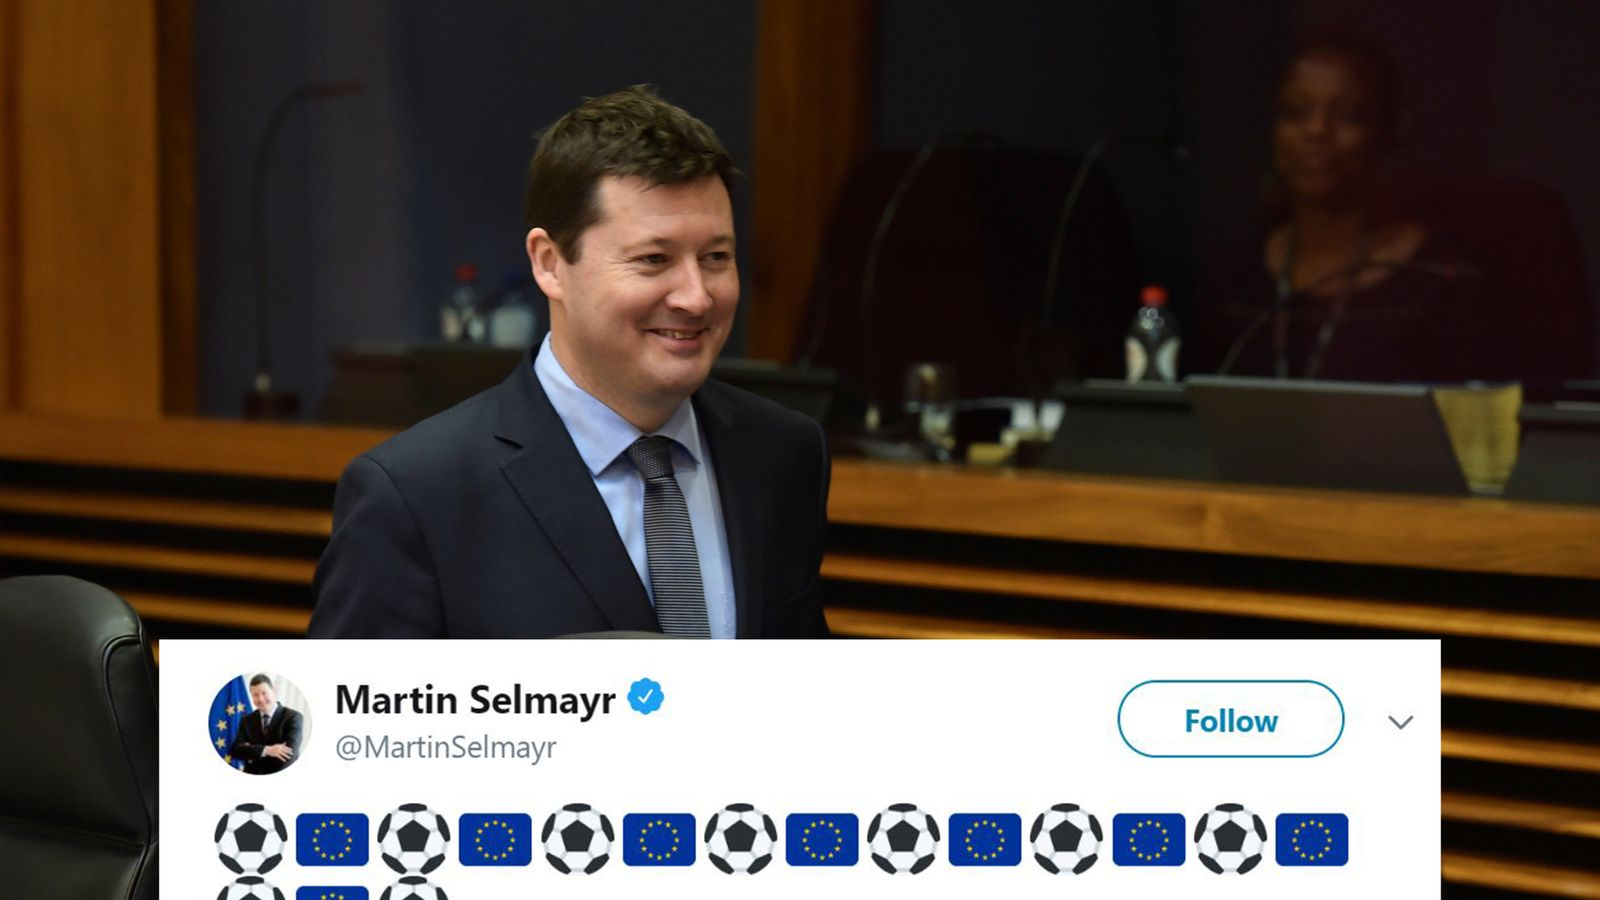 'Brexit nemesis' gloats at England loss in EU tweet